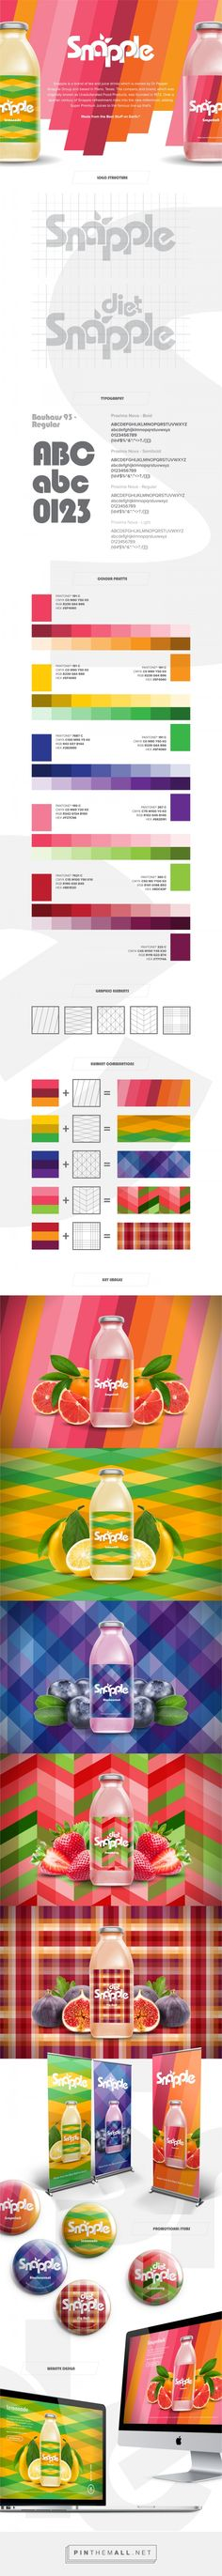 Snapple self-initiated concept by Aw Sei Wei. Source: Behance. #SFields99 #packaging #design